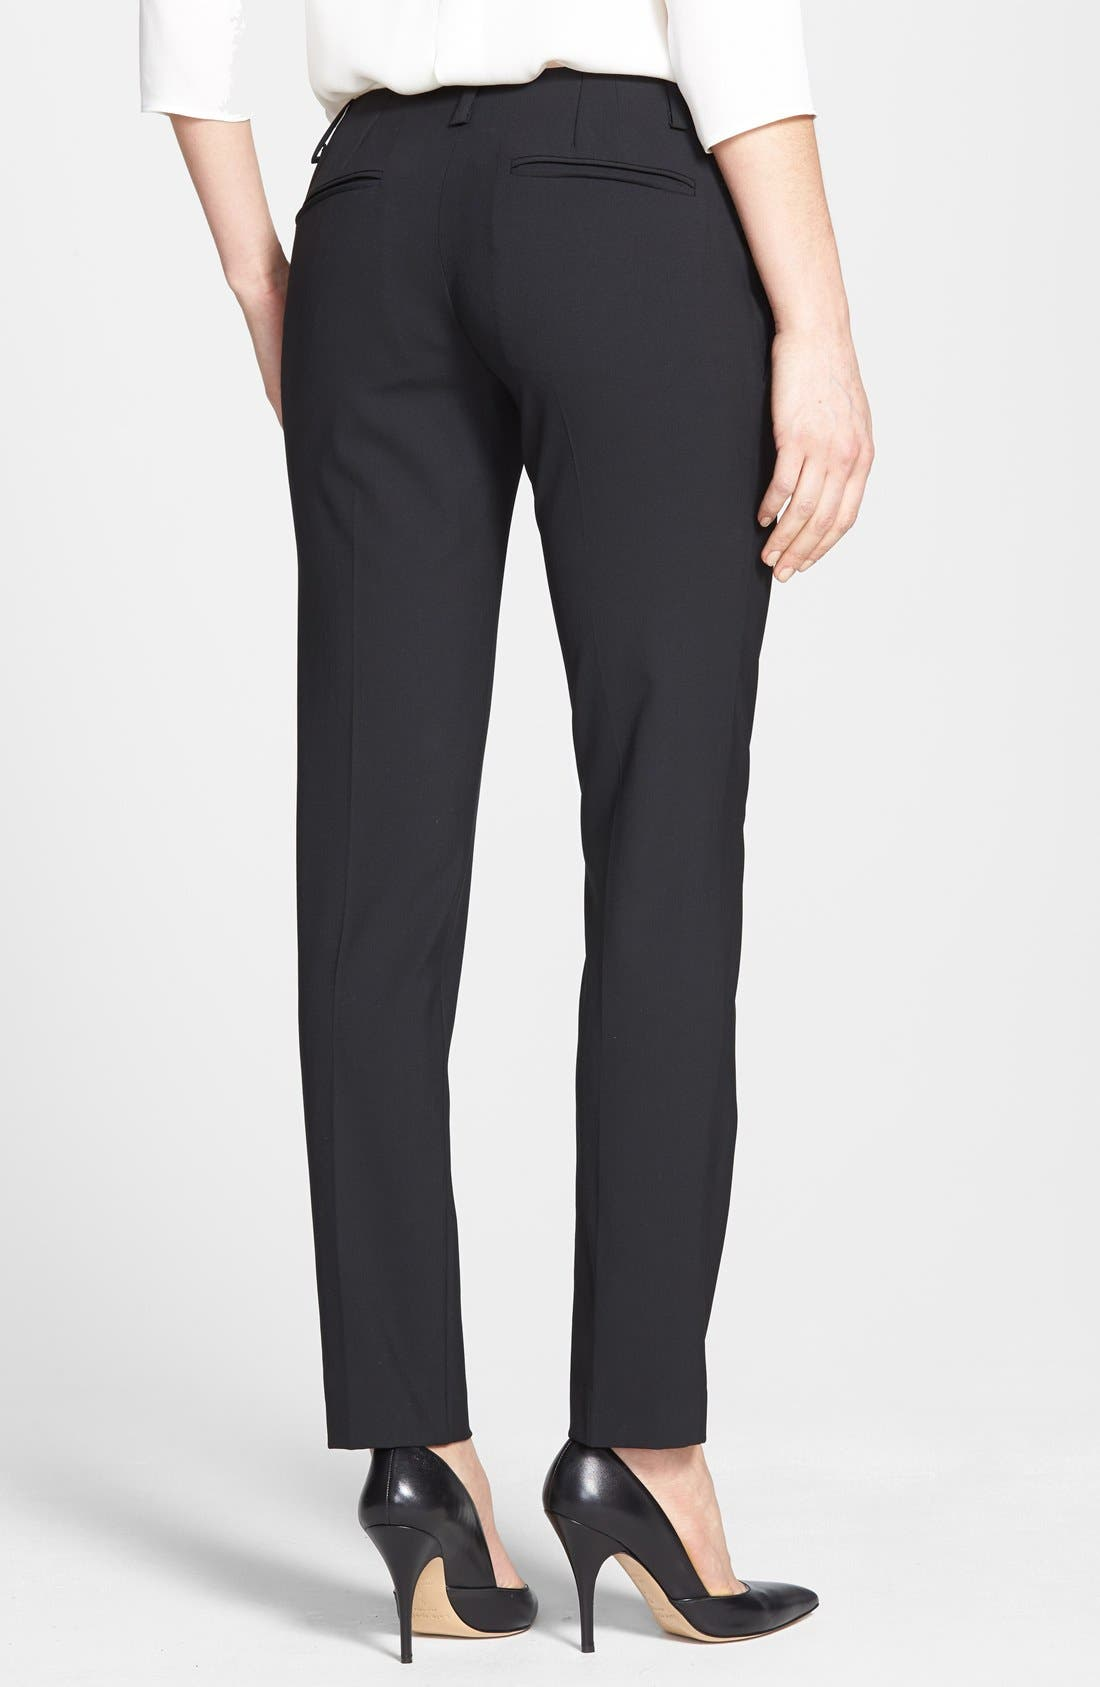 'Ines' Crop Stretch Wool Trousers,                             Alternate thumbnail 2, color,                             001